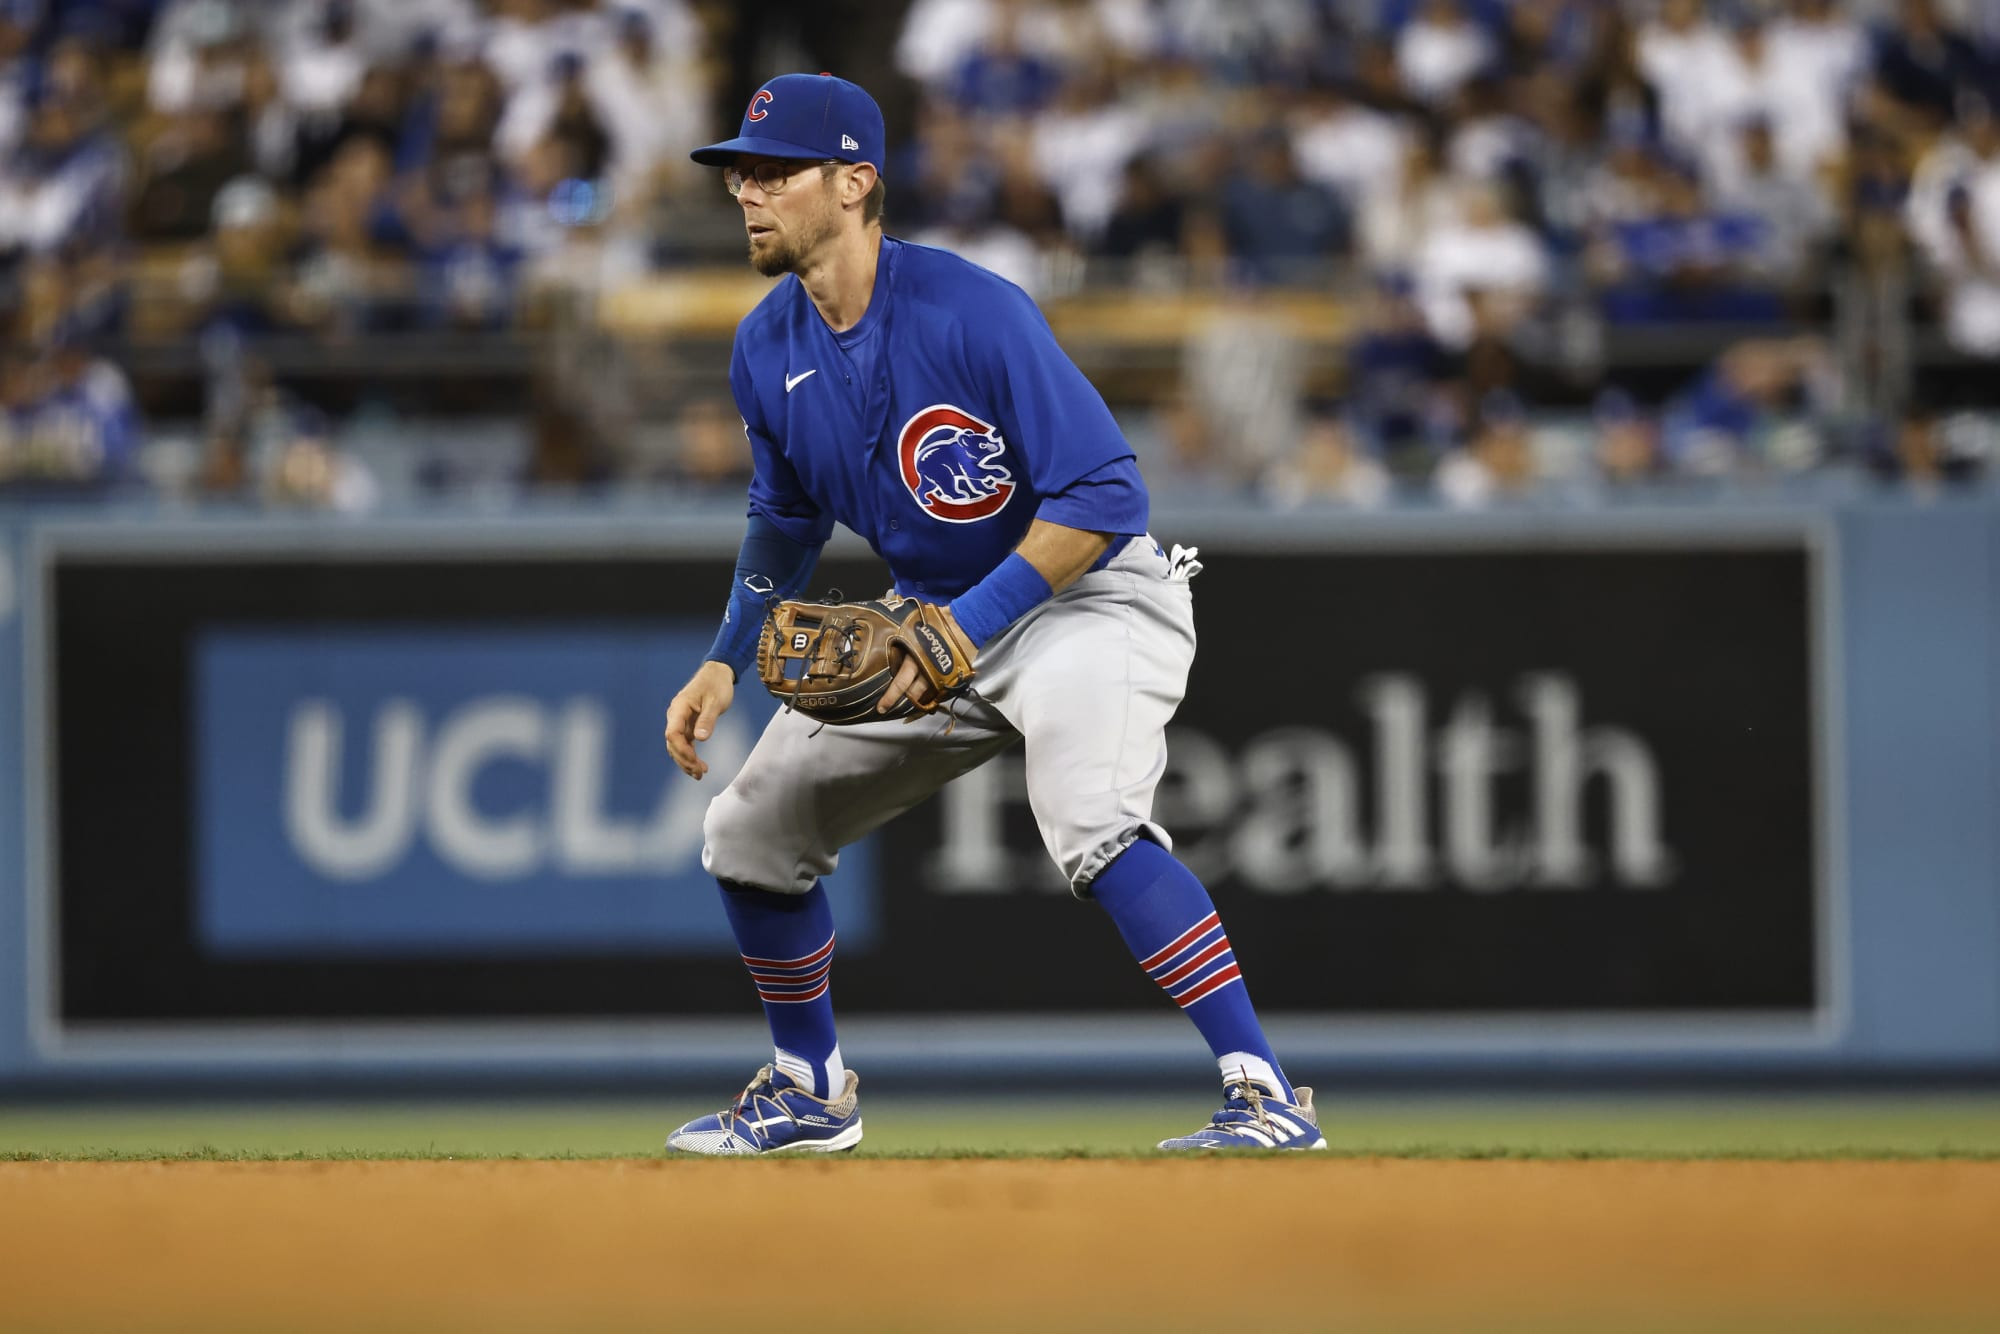 Chicago Cubs ship Eric Sogard out of town, recall Matt Duffy to replace him